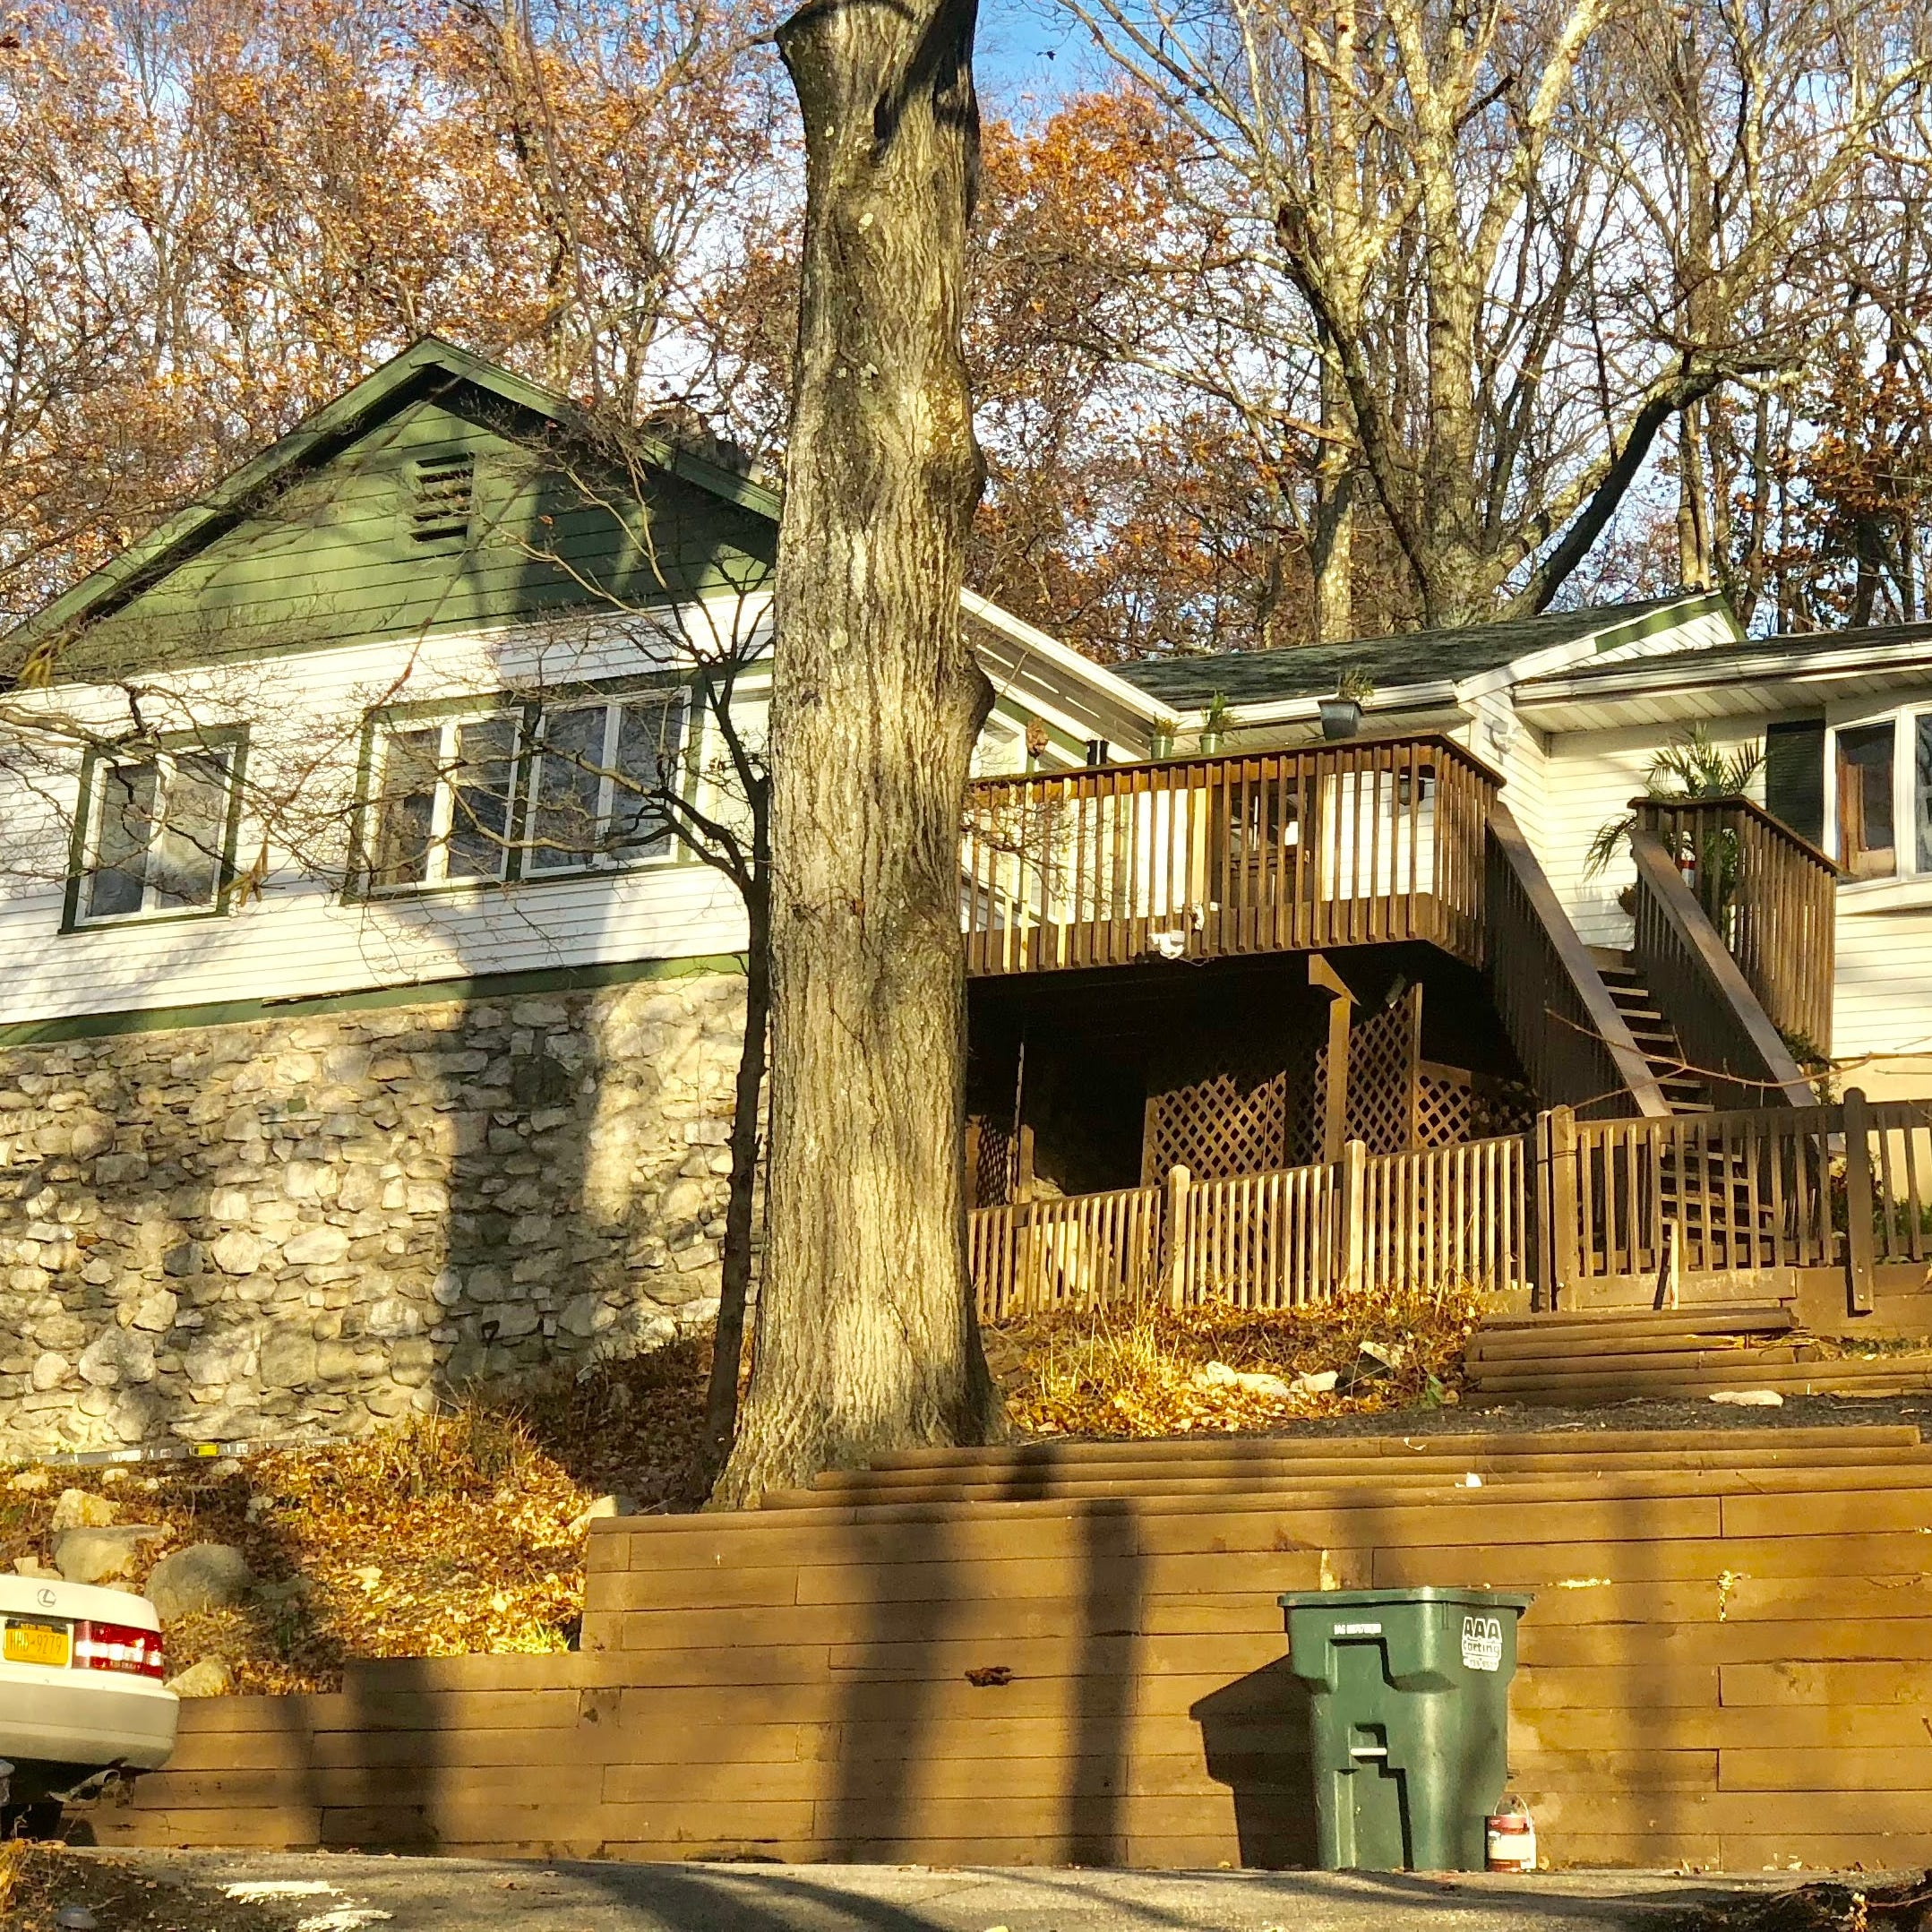 Rappers retreat on Lake Oscawana on the market for $325K